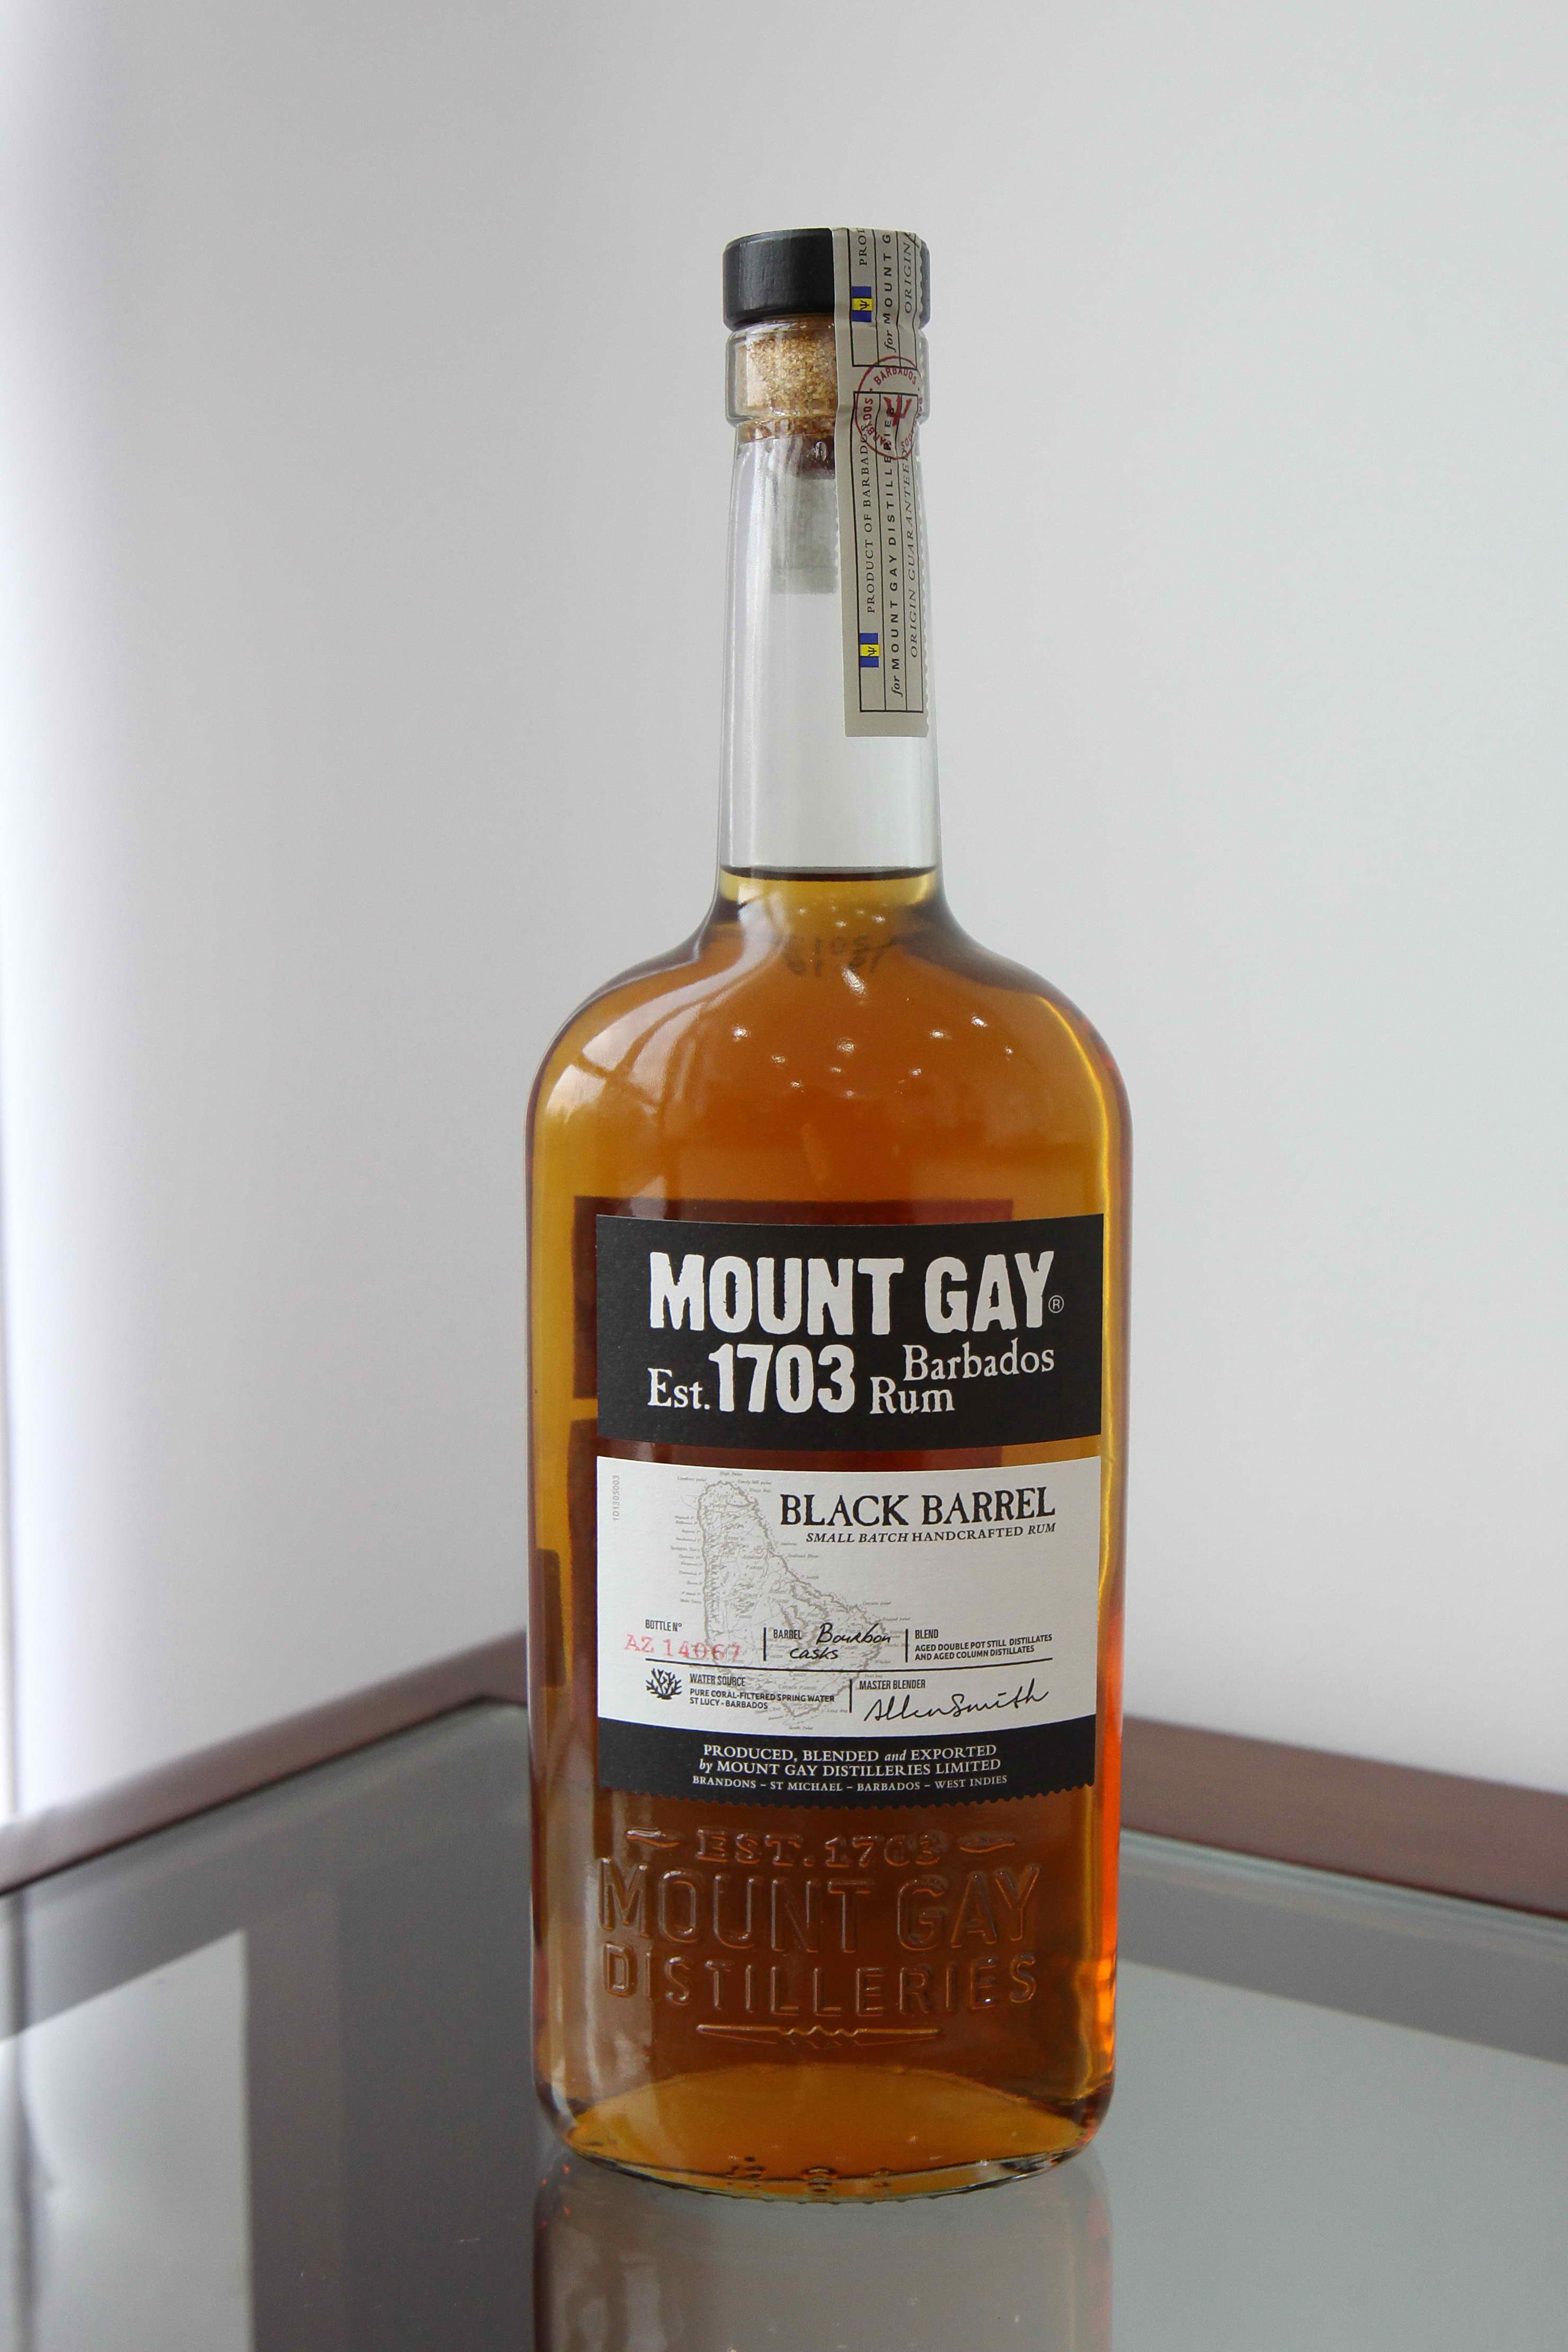 Mount gay rum barbados 1703